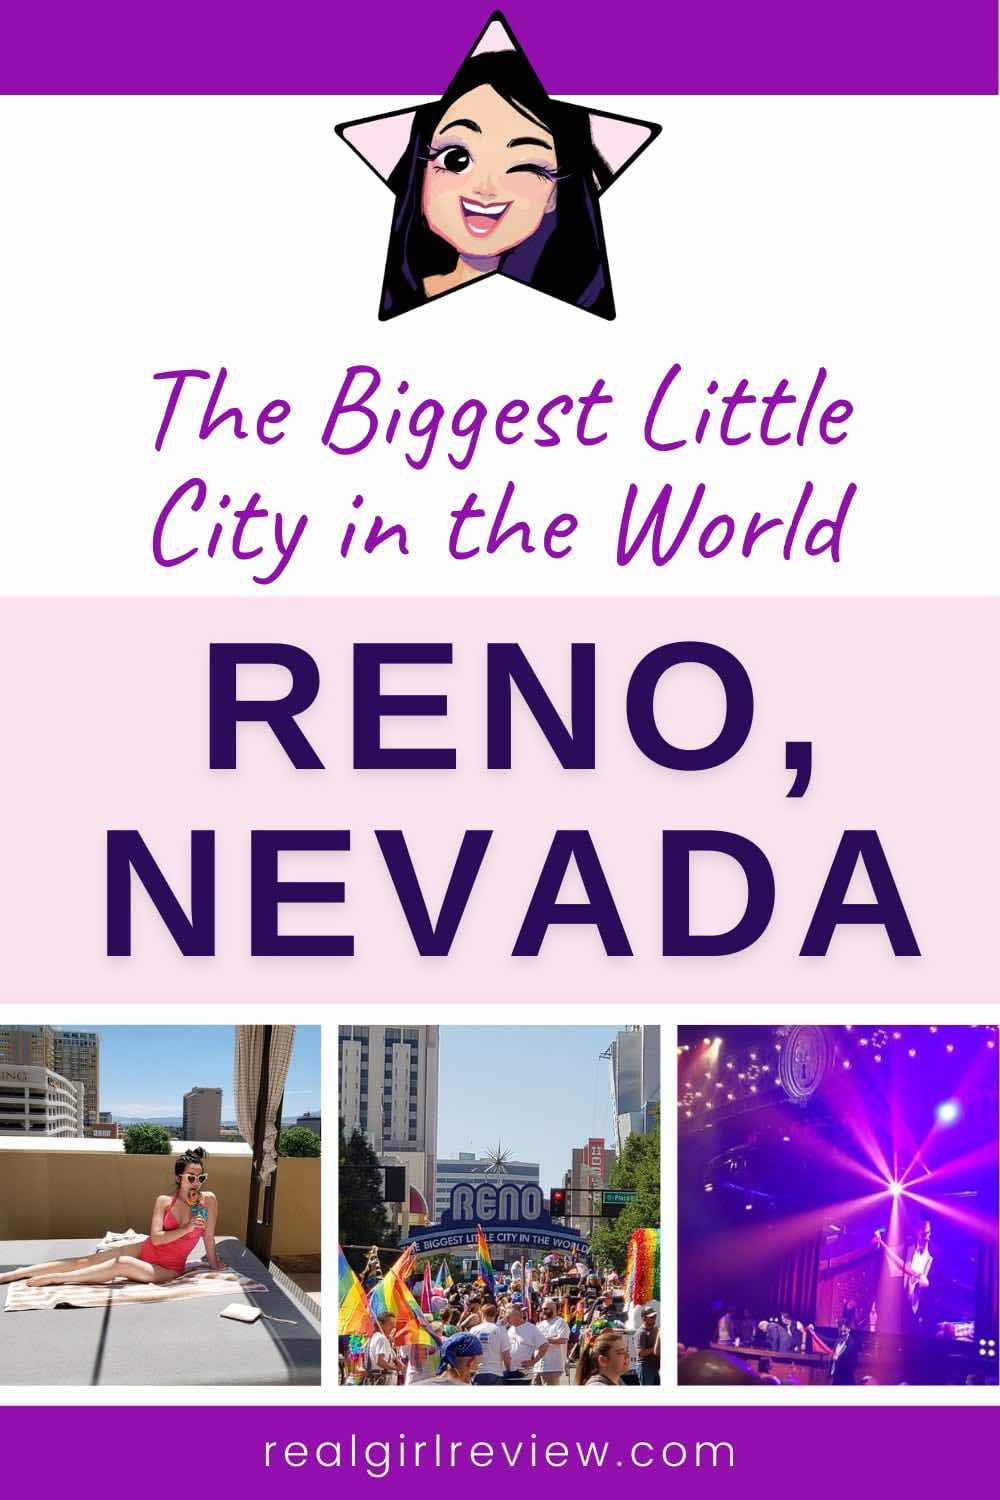 Pinterest Marketing Pin | The Biggest Little City in the World: Reno, Nevada